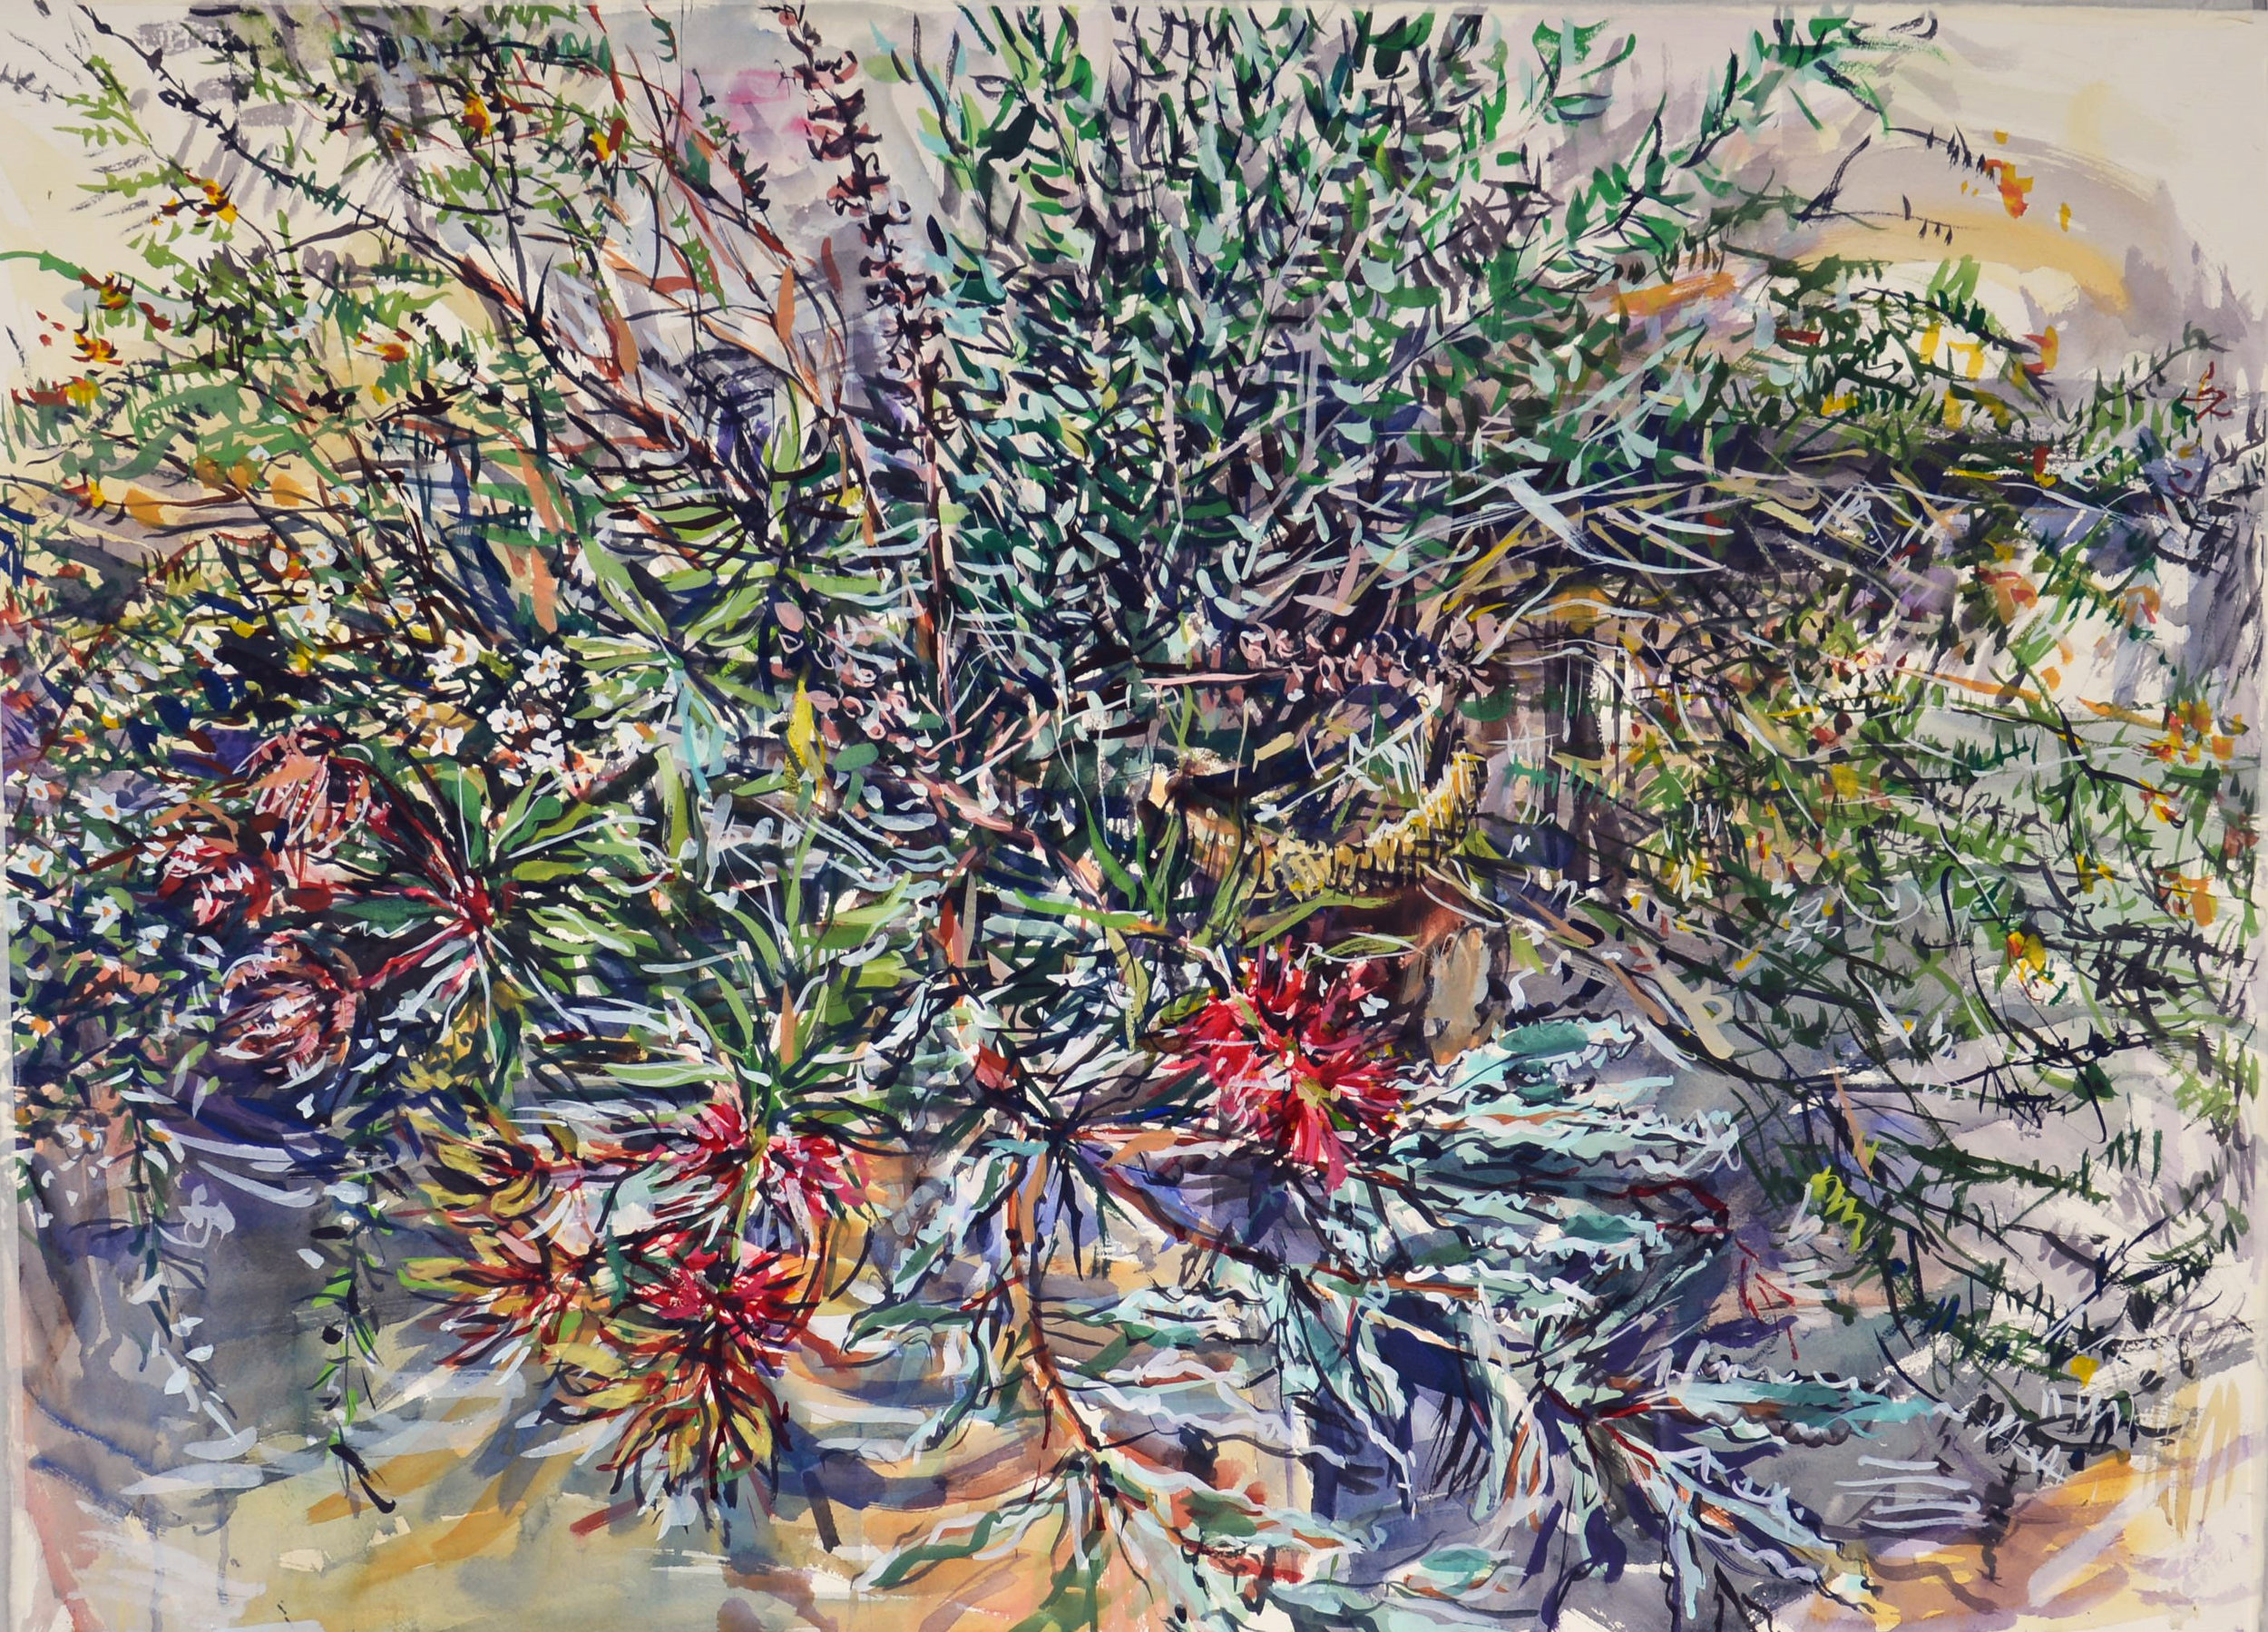 Wallum Bouquet 1 (with red bottlebrush and yellow pea flowers) 2018 gouache on rag paper 78 x 108cm